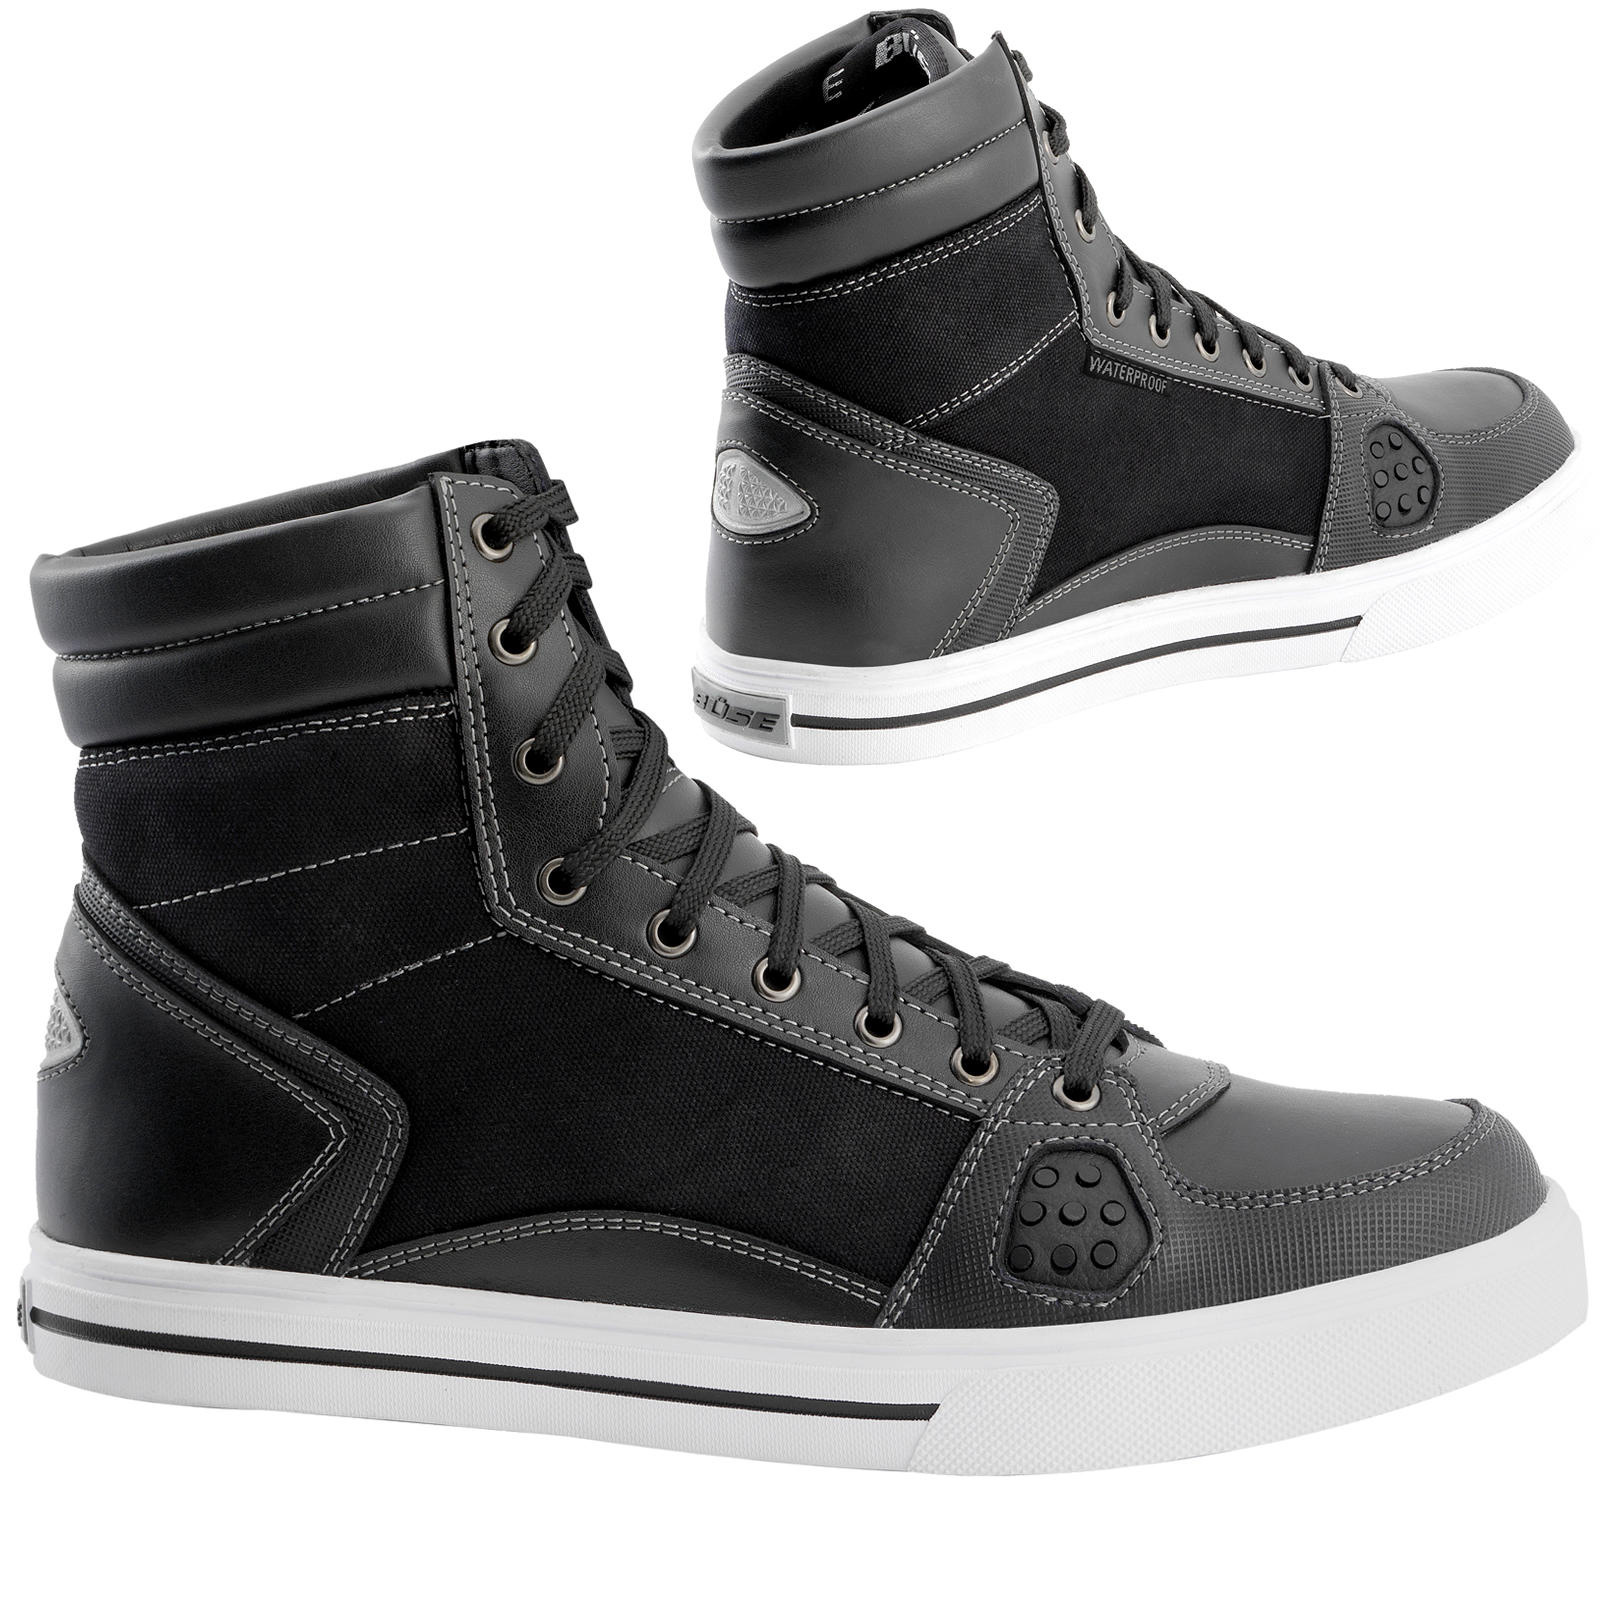 Buse B58 Motorcycle Boots - Clearance - Ghostbikes.com